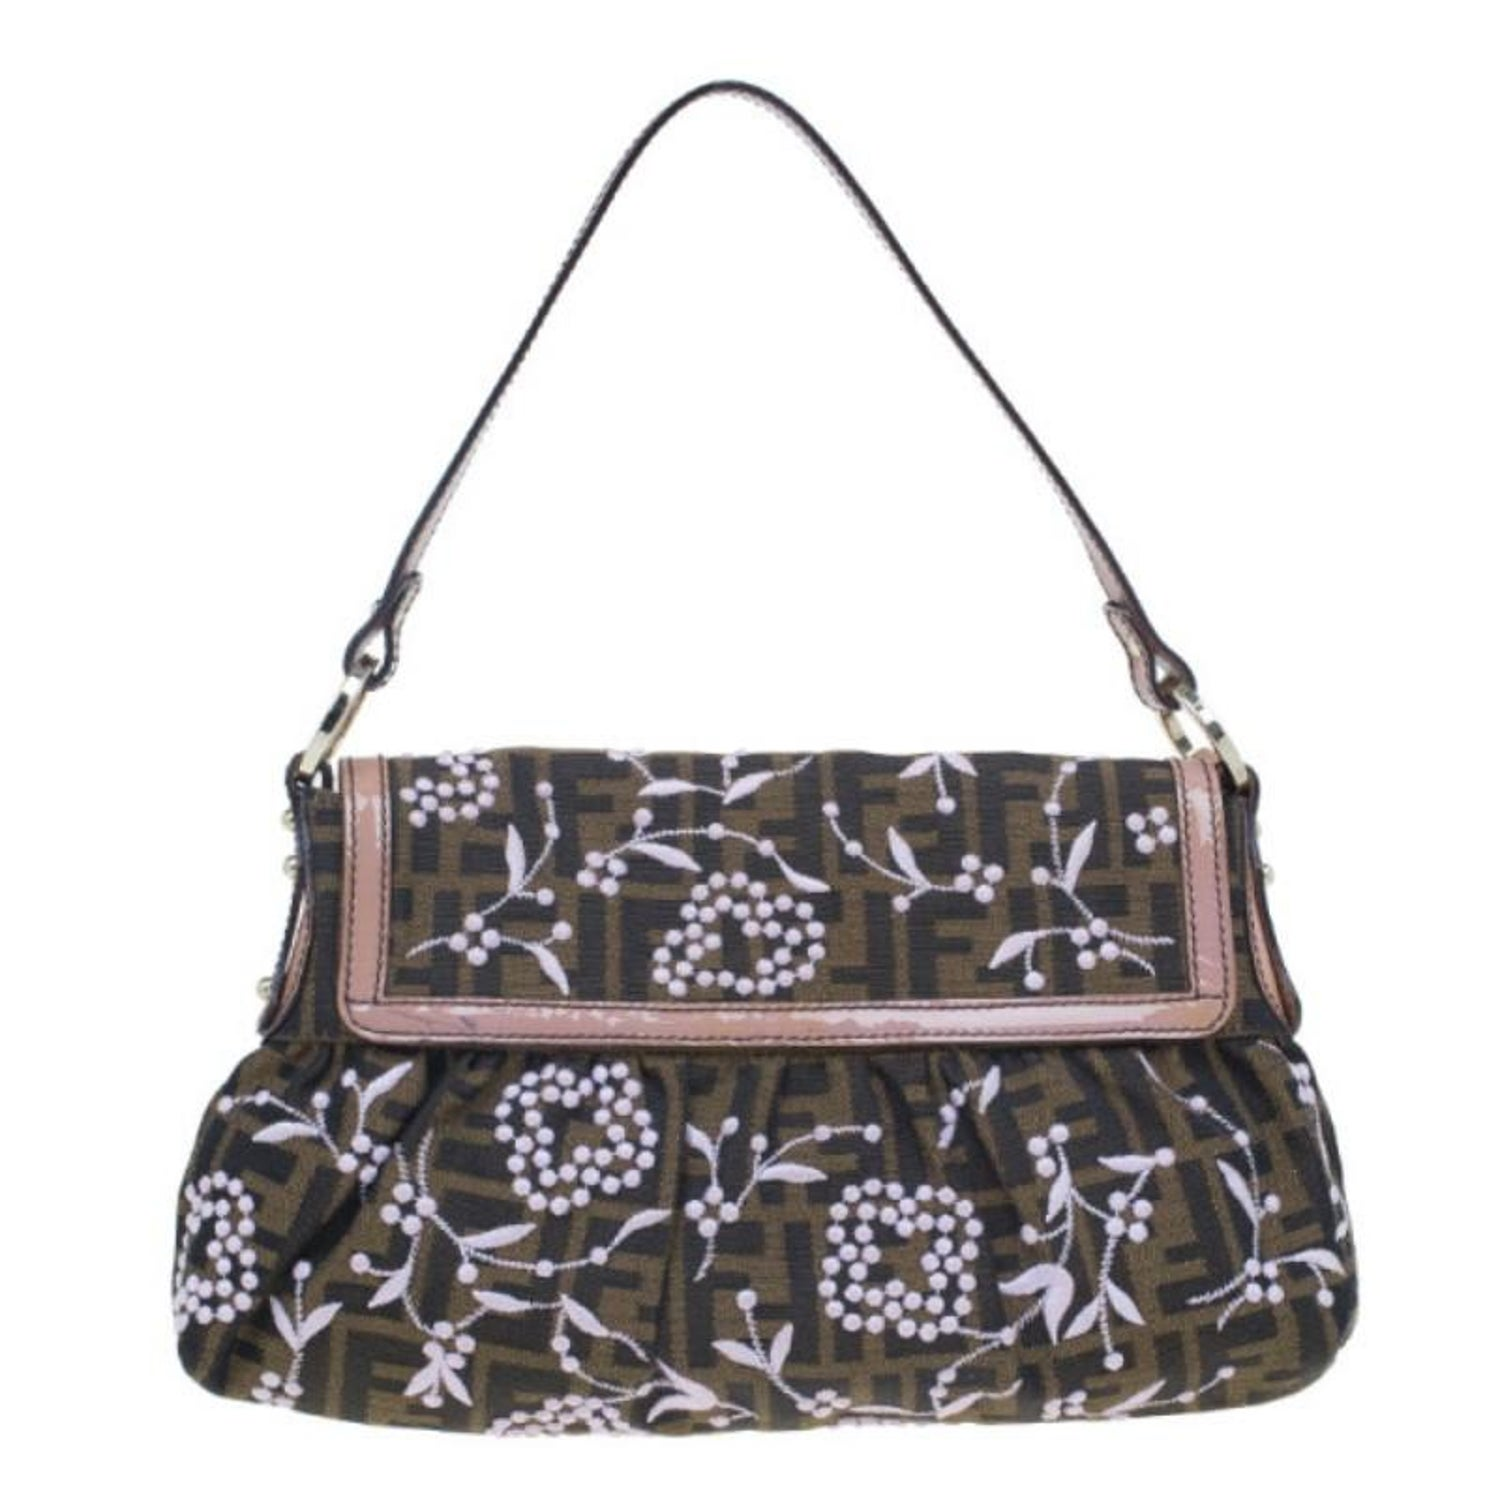 d268346a585a Fendi Limited Edition Zucca Borsa Embroidered Chef Bag For Sale at 1stdibs